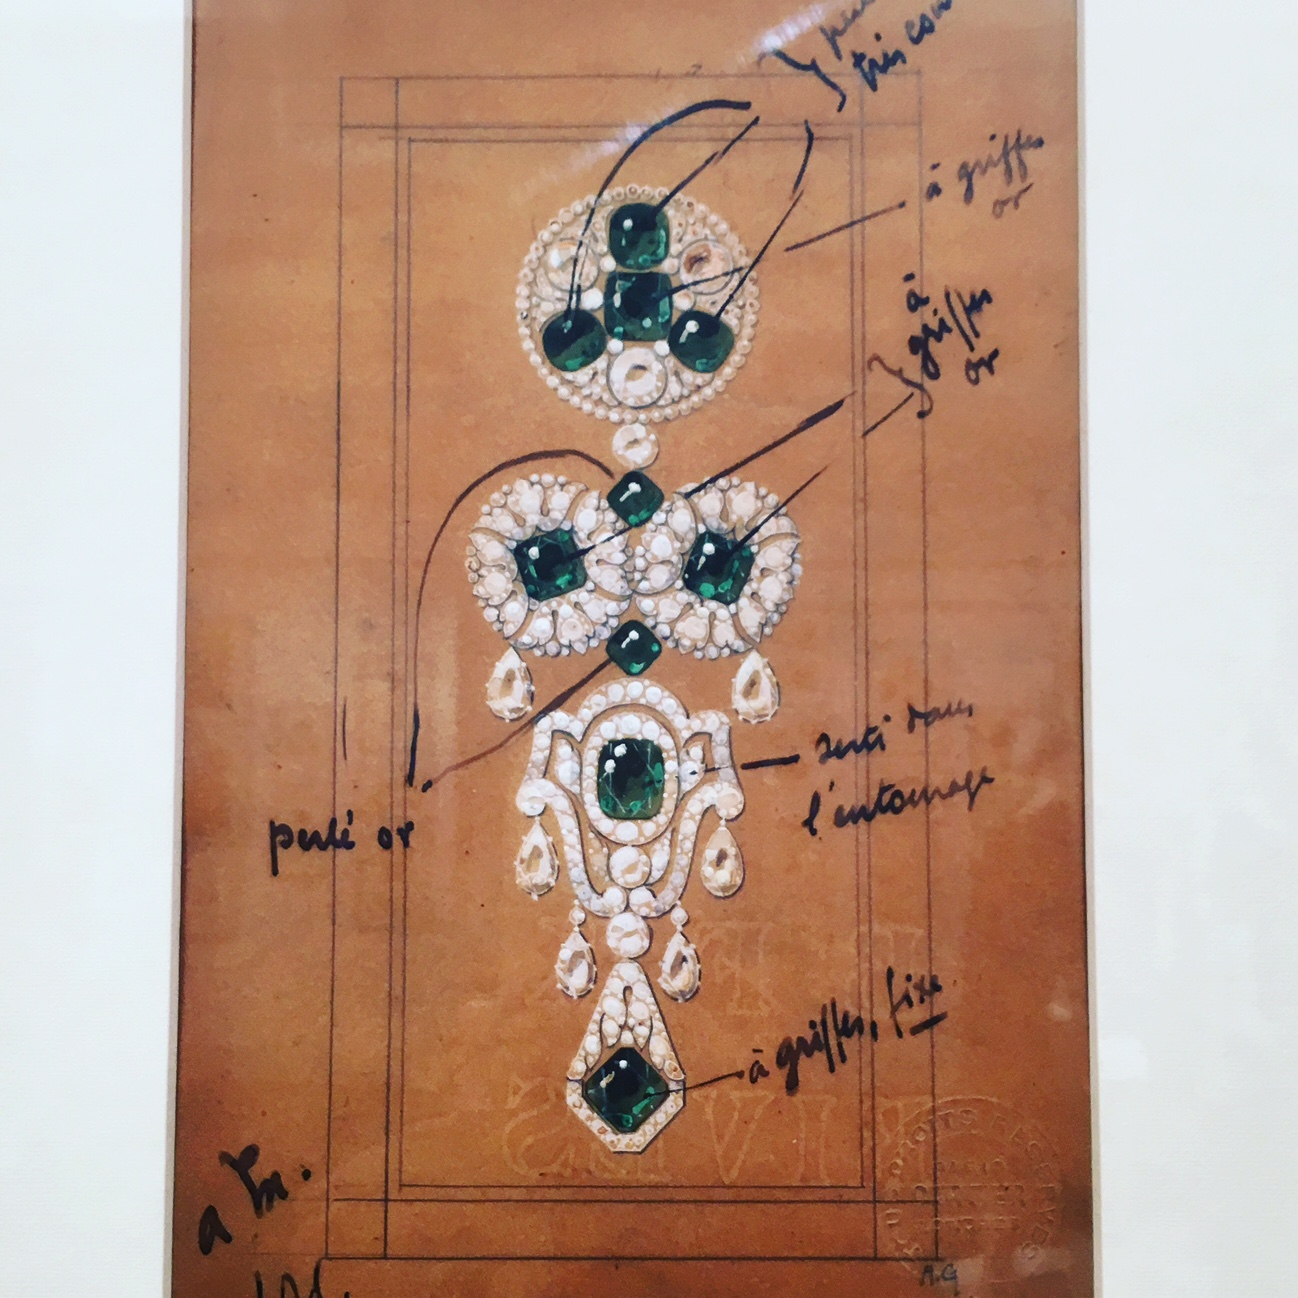 Working drawing by Bolin for an important emerald and diamond 'devant de corsage' recently exhibited at the Sotheby's 'Jewellery Drawings' exhibition.